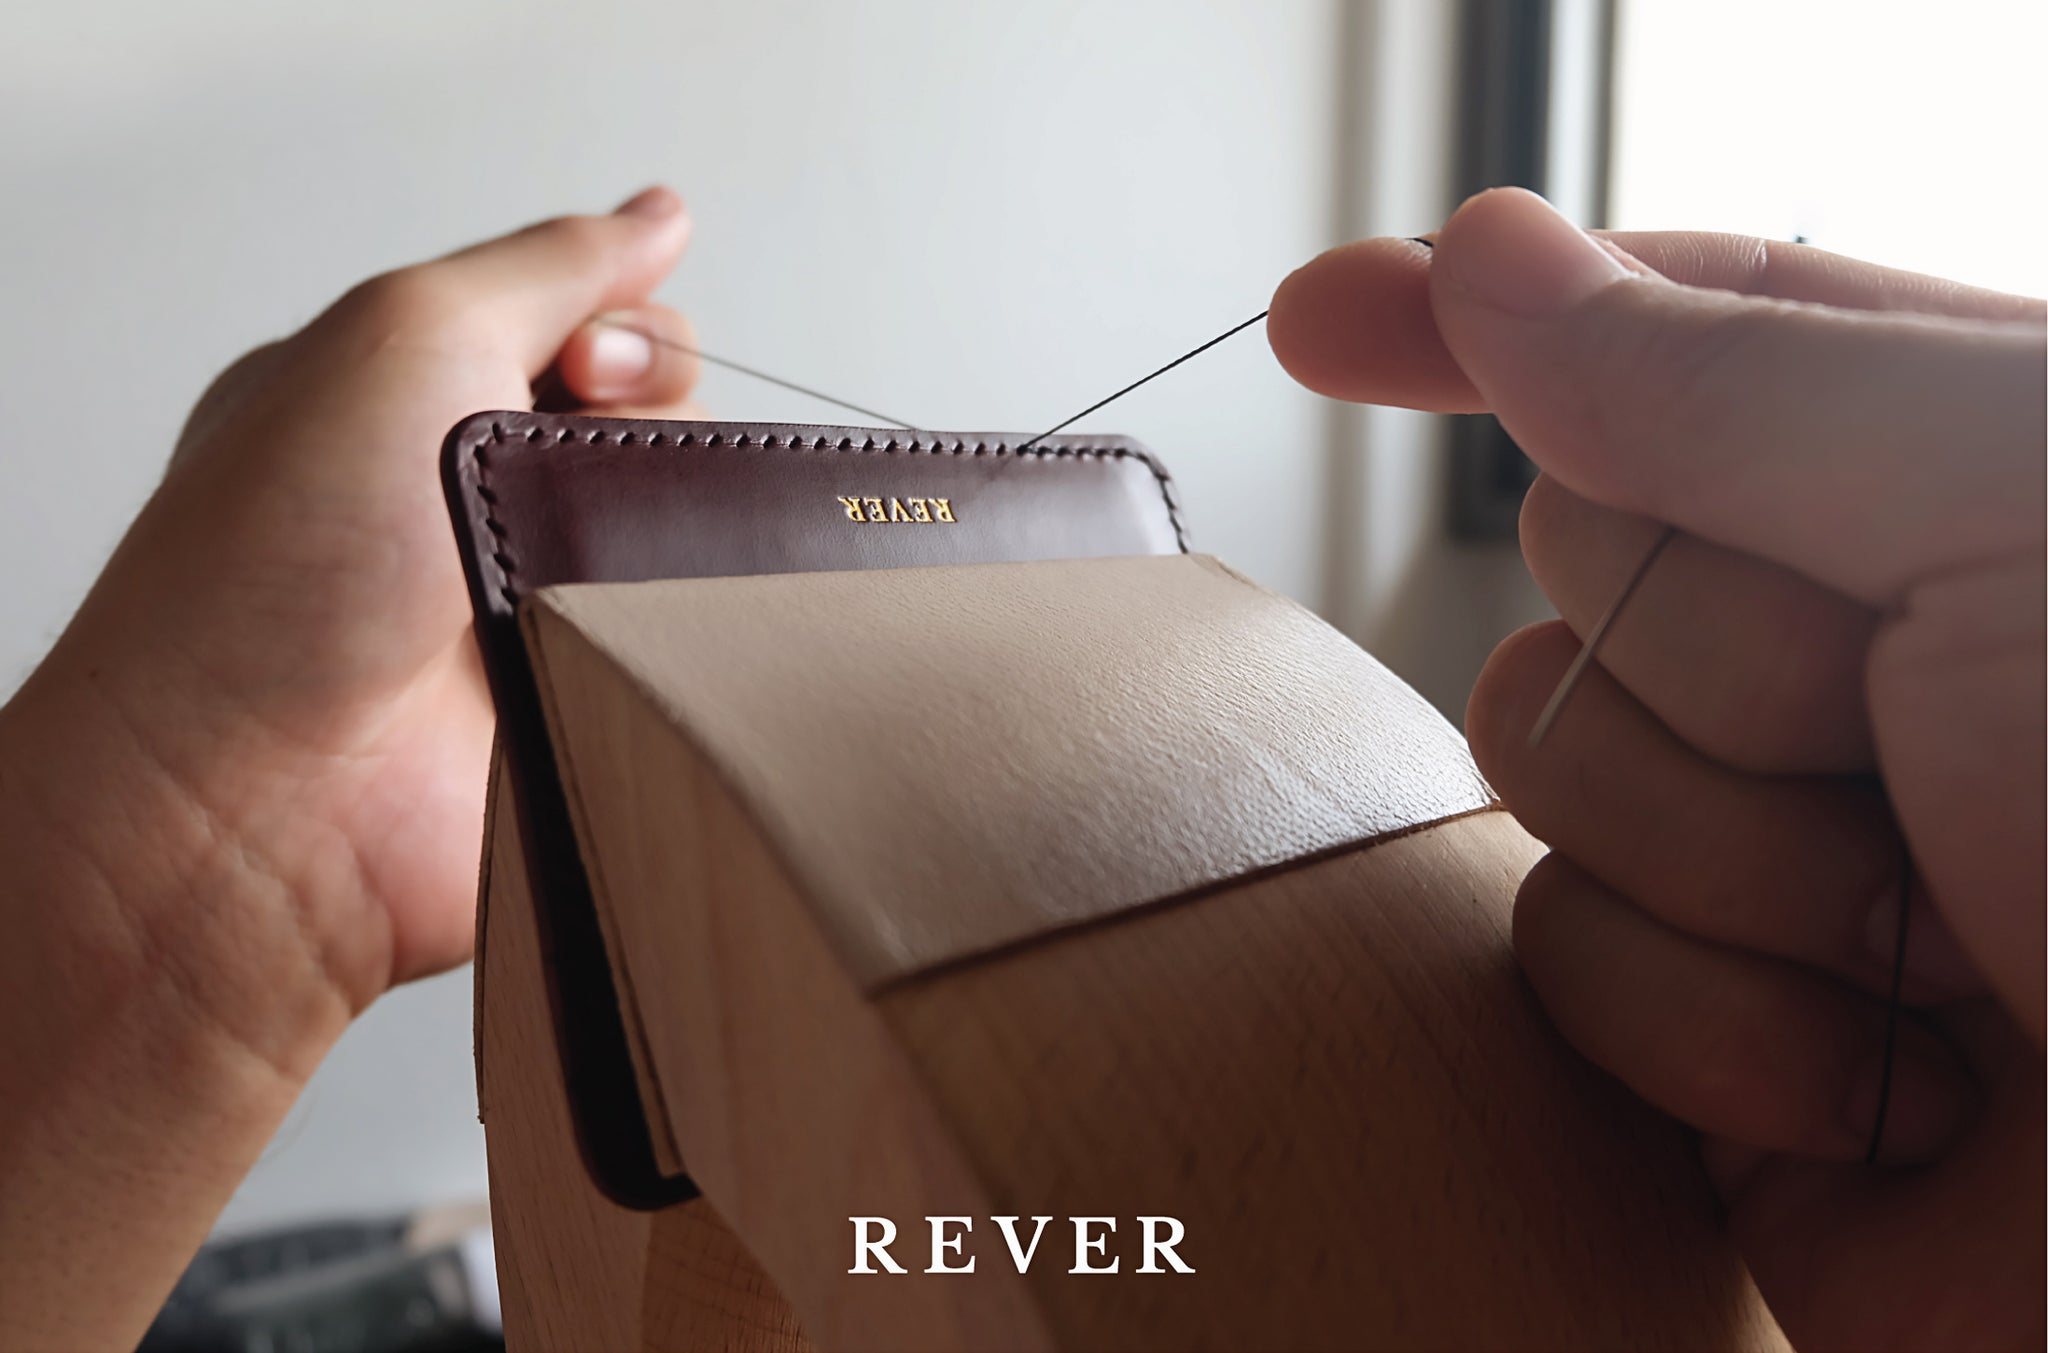 Rever Leather Goods Behind The Scenes Handcrafting Hand Stitching